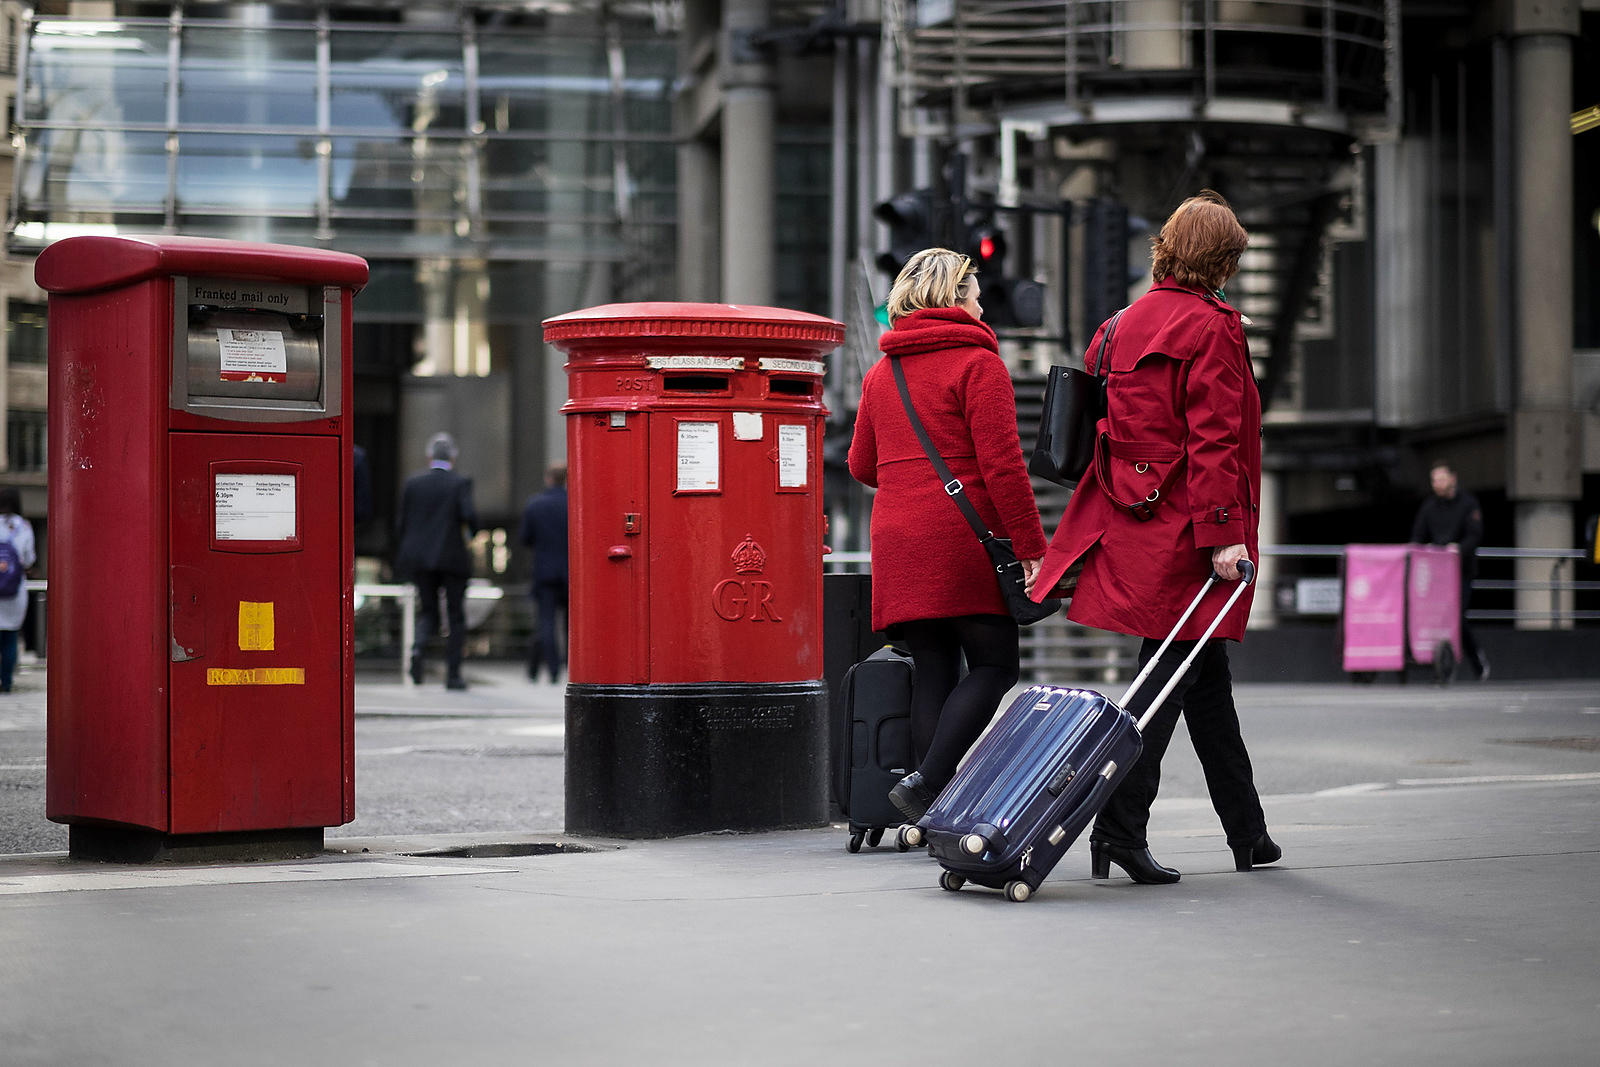 Two-women-wearing-red-coats-walking-past-two-red-letterboxes-Copyright-Rob-JOHNS_20170313_ROB7948